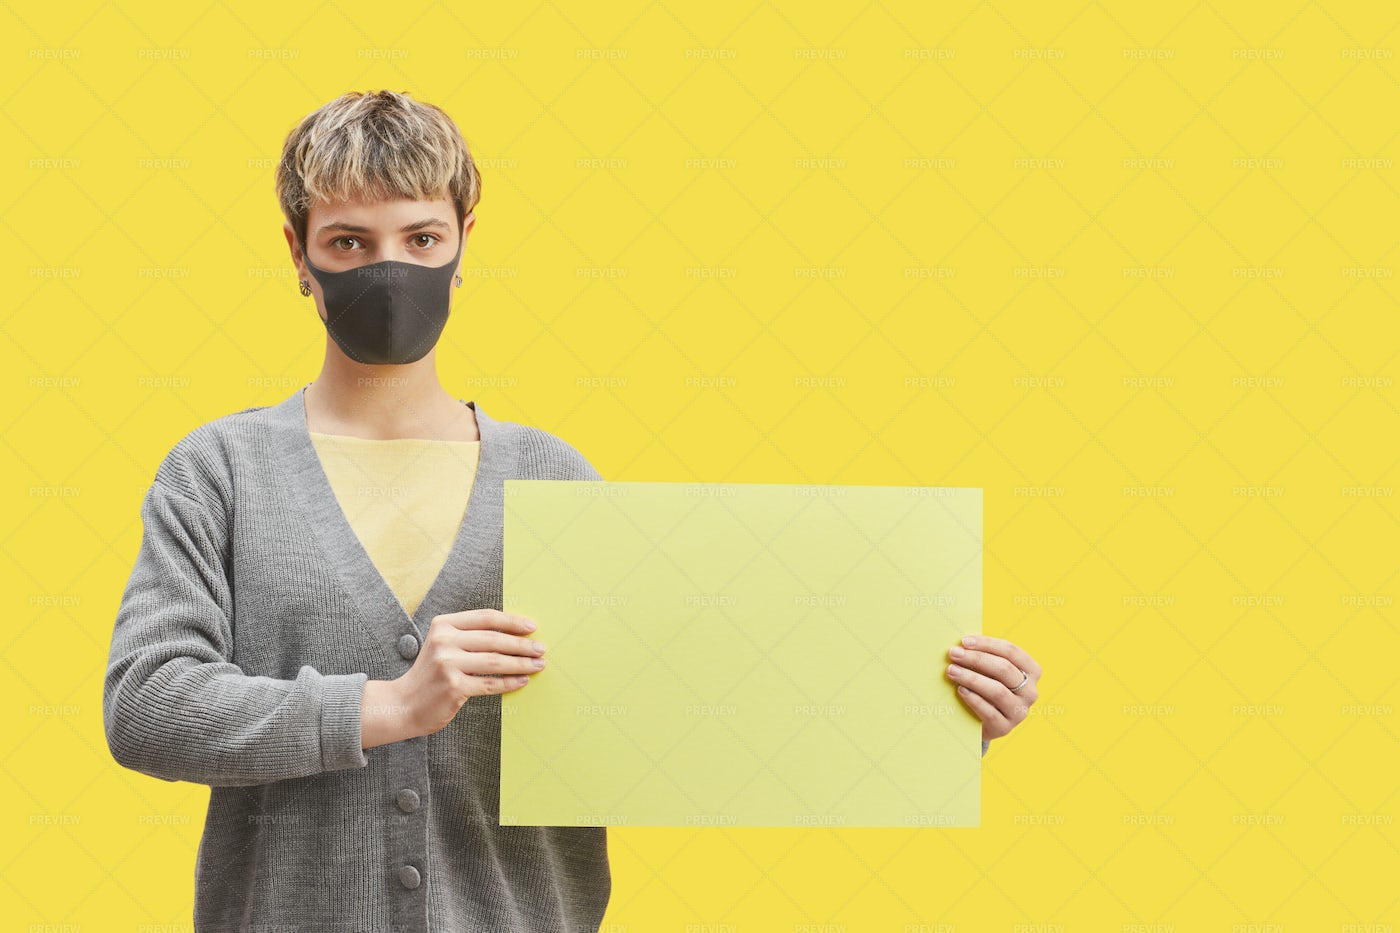 Lady Wearing Mask Holding Sign On Yellow: Stock Photos